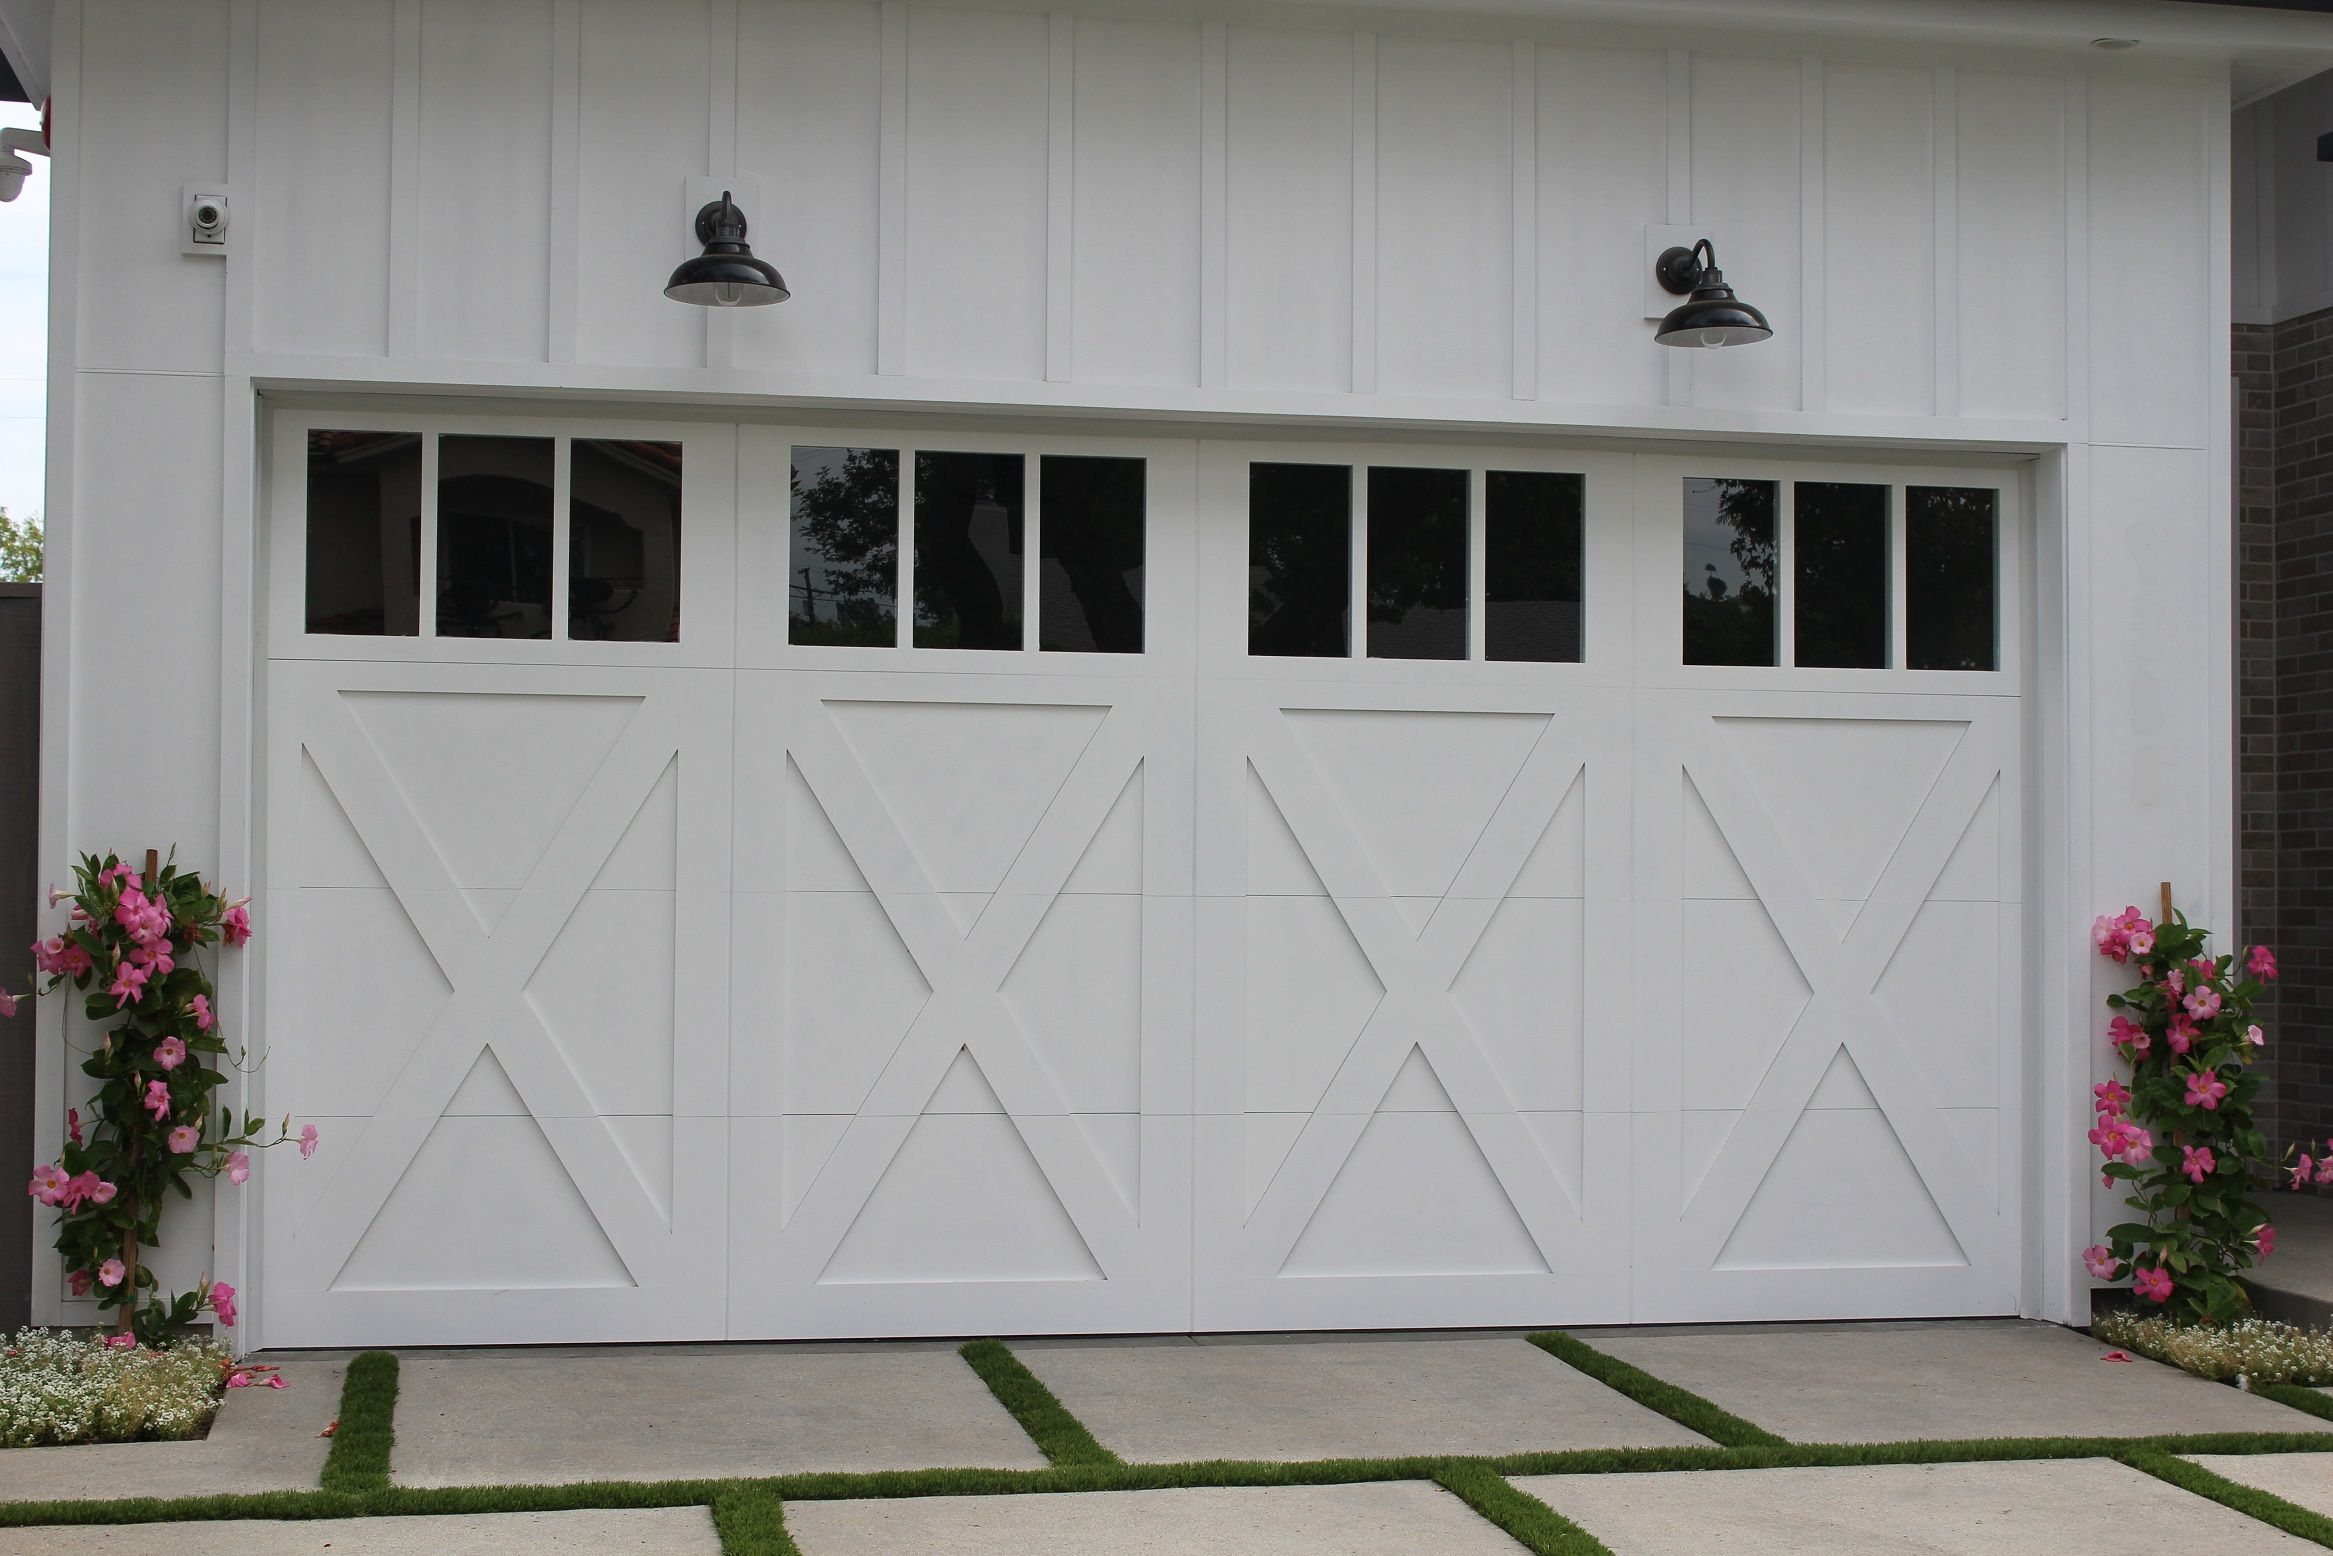 Clopay Coachman Collection Insulated Steel And Composite Carriage House Garage Door Cross Buck Design Wi Carriage Garage Doors Garage Doors Double Garage Door